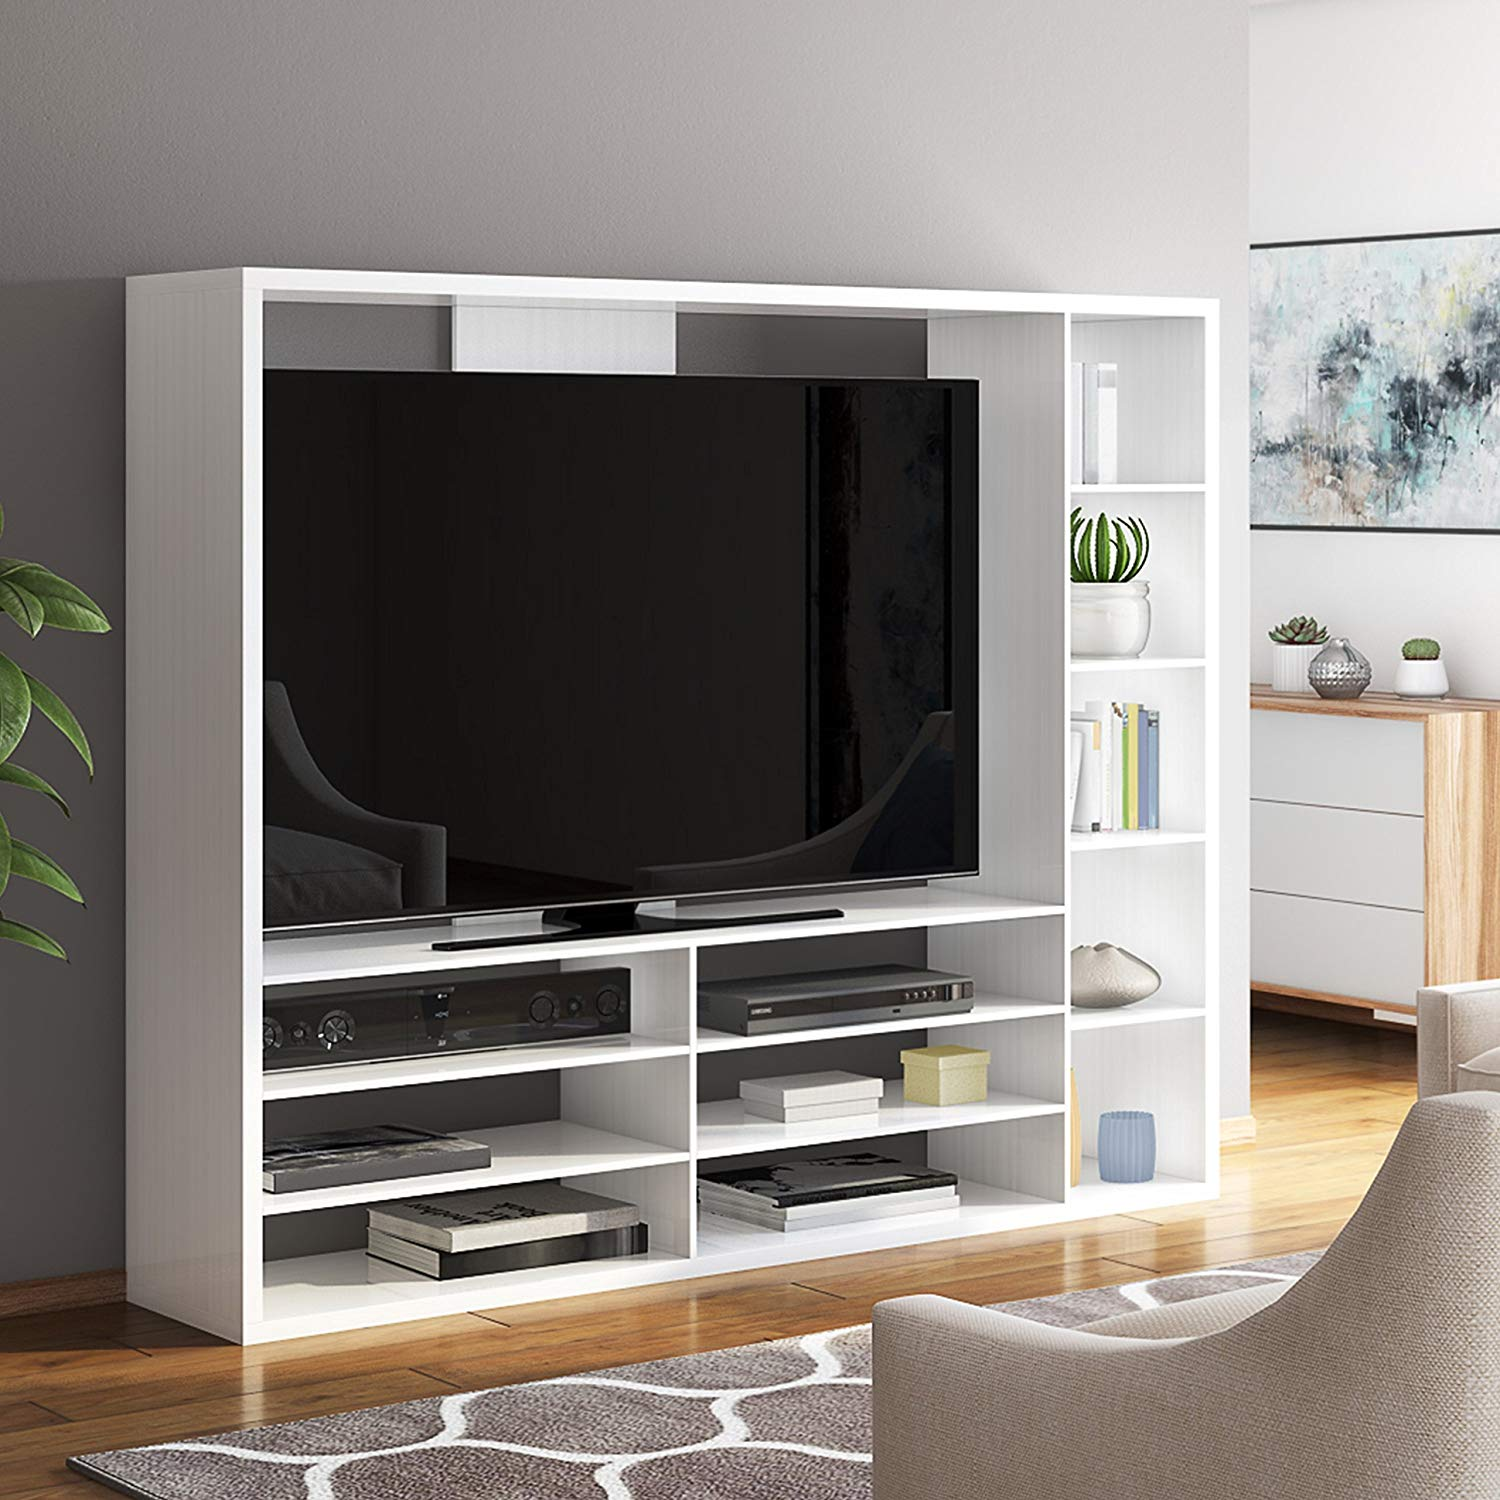 Great TV Stand With Clean Lines, Sleek Design, Modern Look, Large Open Shelf & Six Lower Shelves, Plenty Of Space, Sturdy Construction, Supportive Back Panel, Wood Material, White Finish